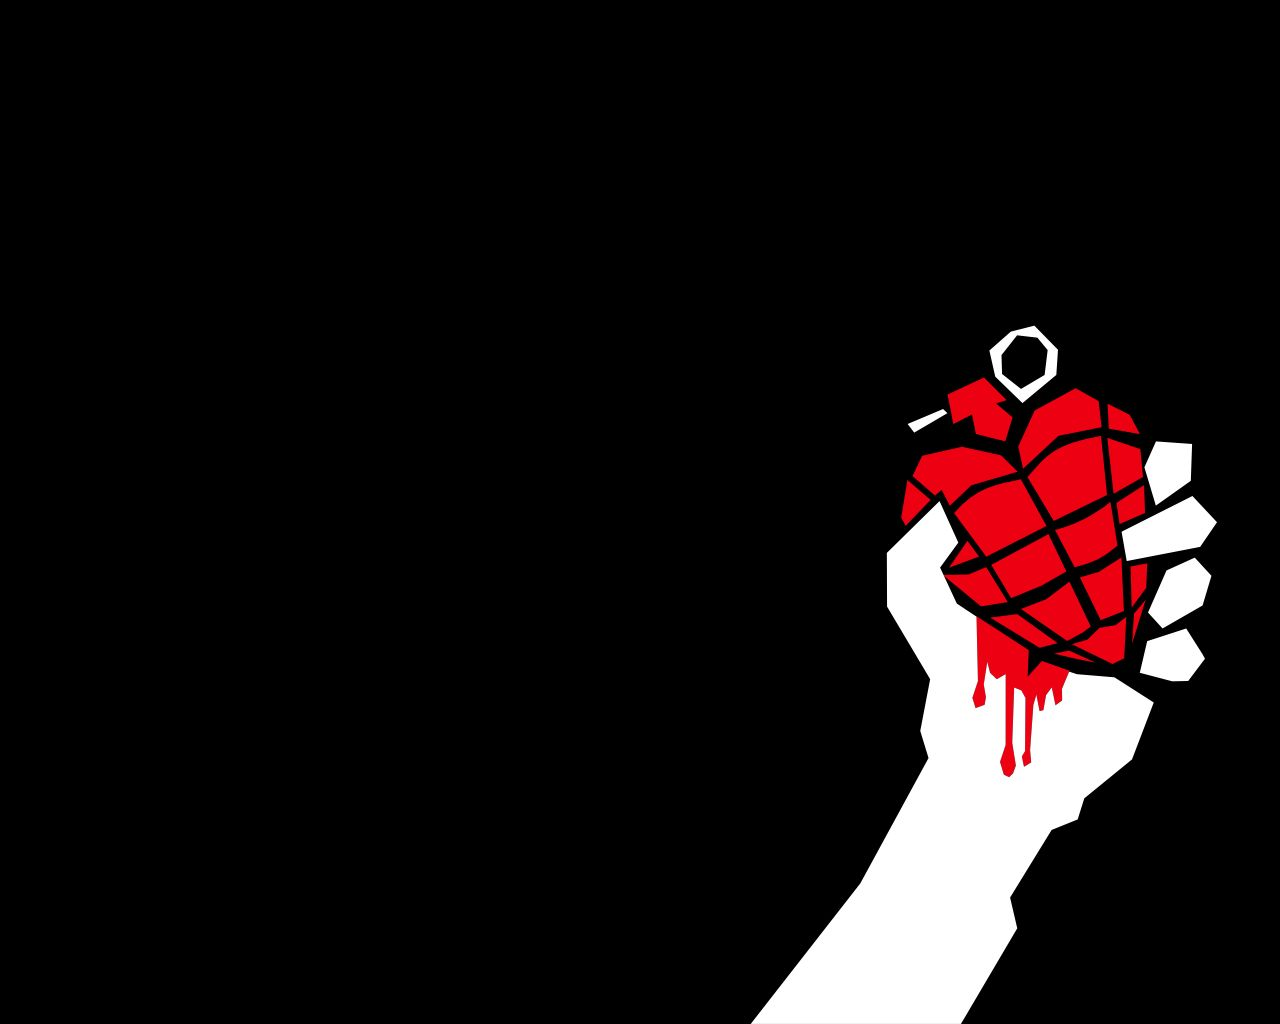 1280x1024 Download the American Idiot Green Day Wallpaper, American Idiot ...